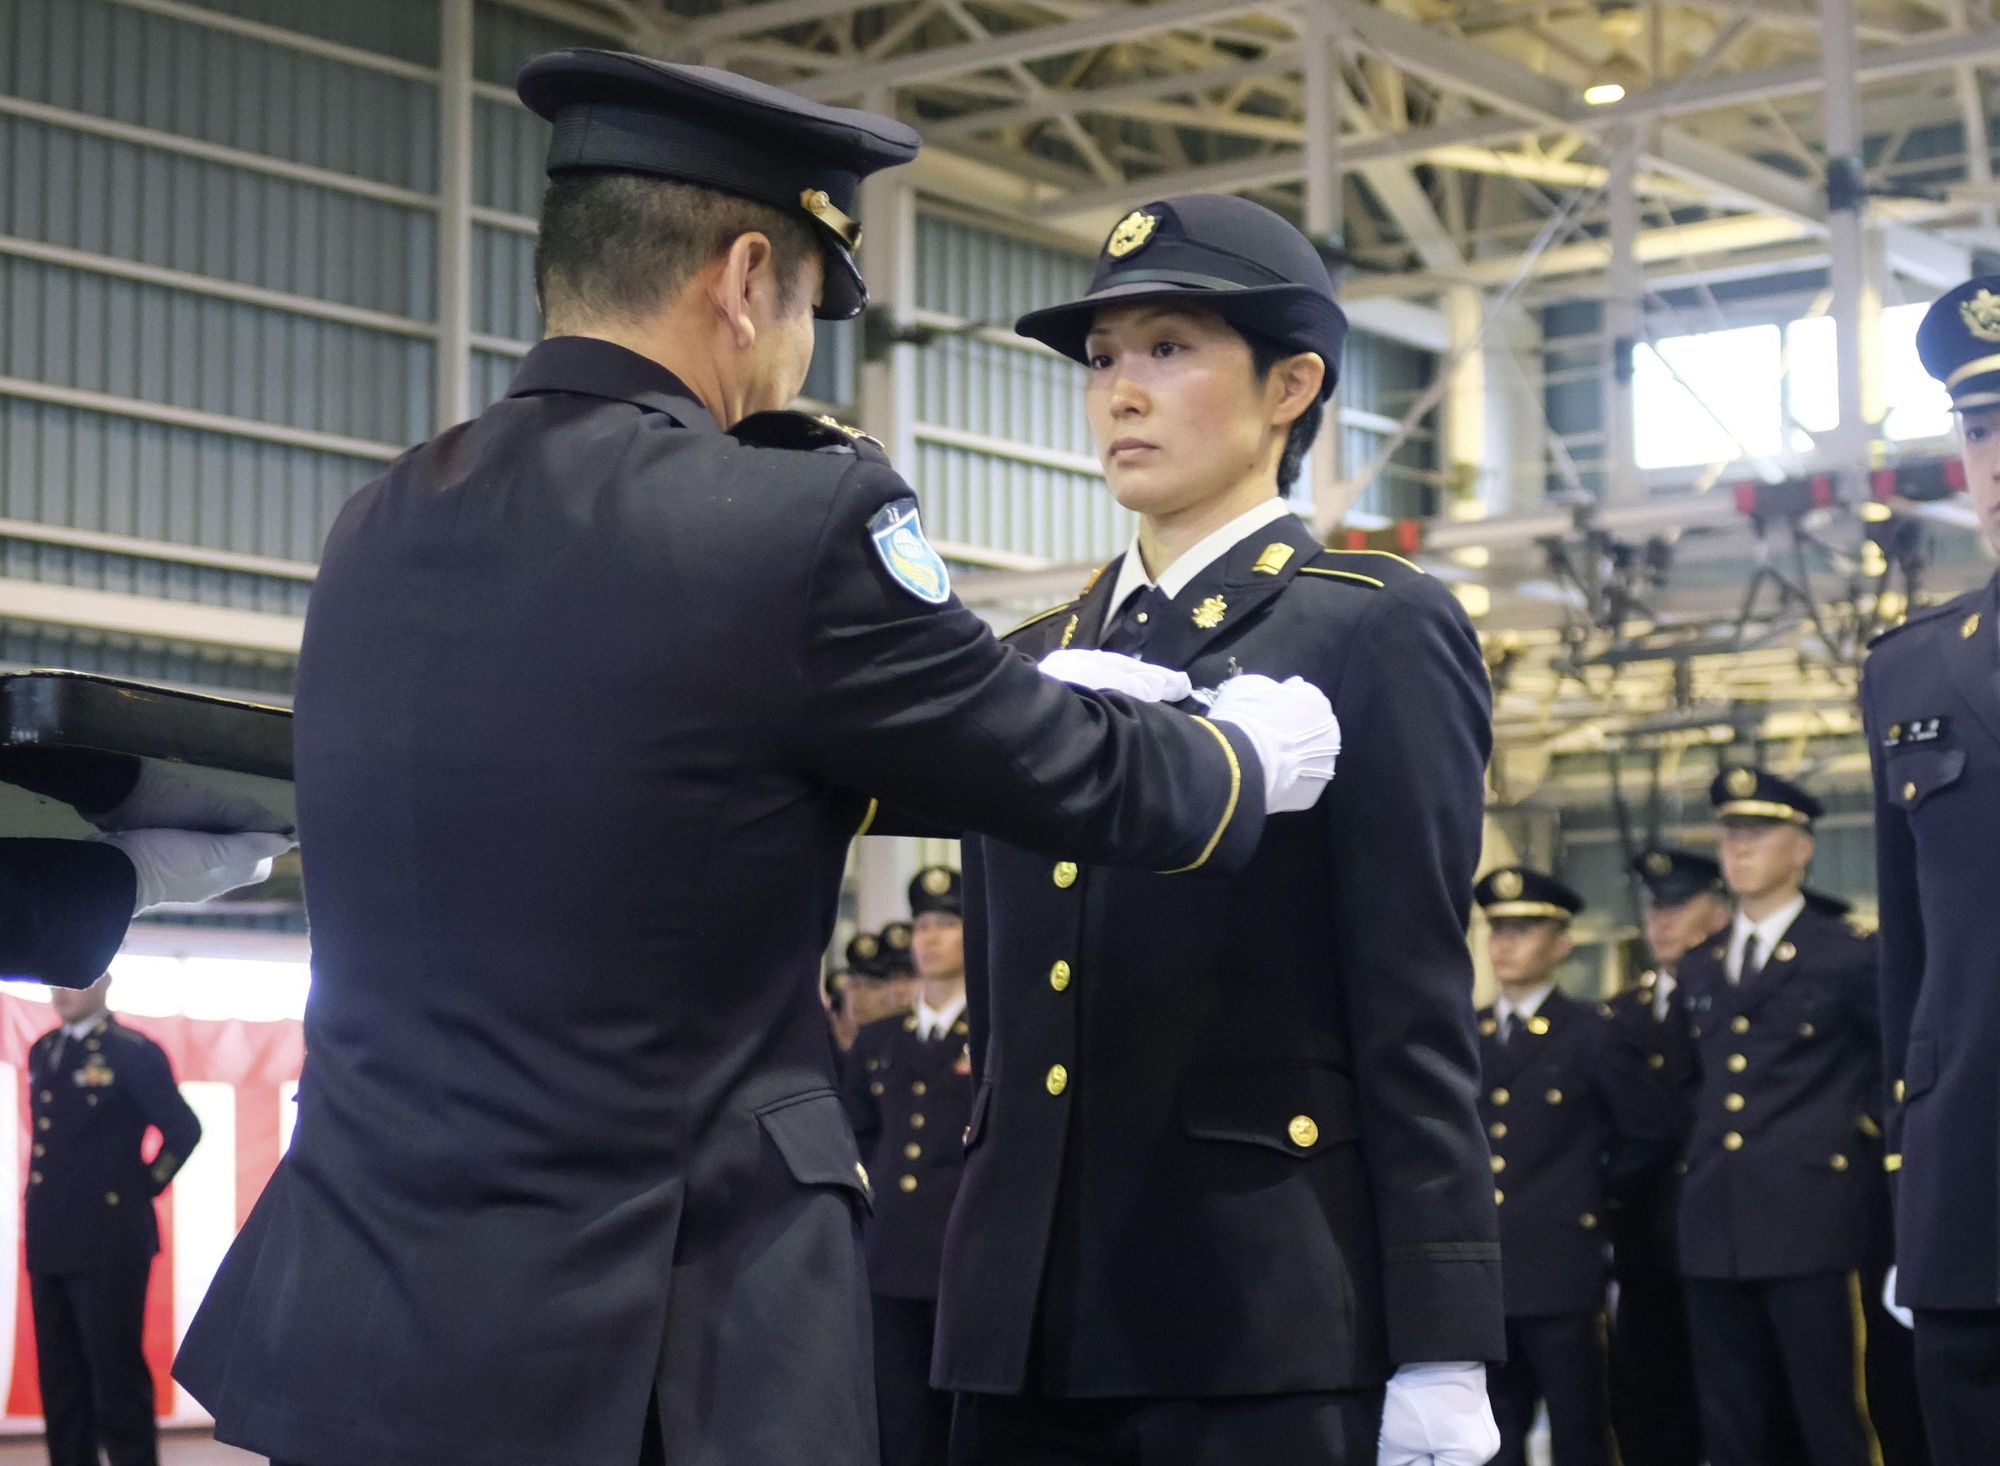 Sgt. Reina Hashiba is awarded the badge of an airborne brigade member at the Ground Self-Defense Force's Camp Narashino in Chiba Prefecture on Wednesday. | KYODO